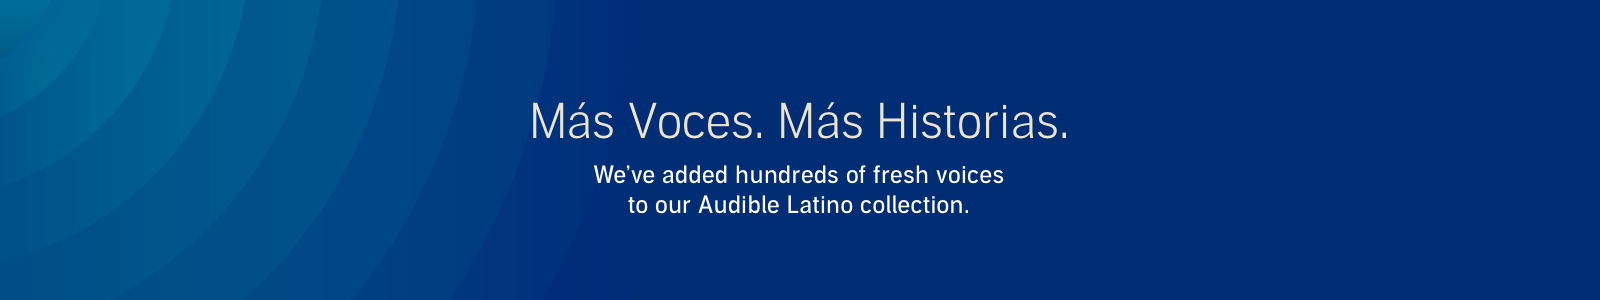 We've added hundreds of fresh voices to our Audible Latino collection.